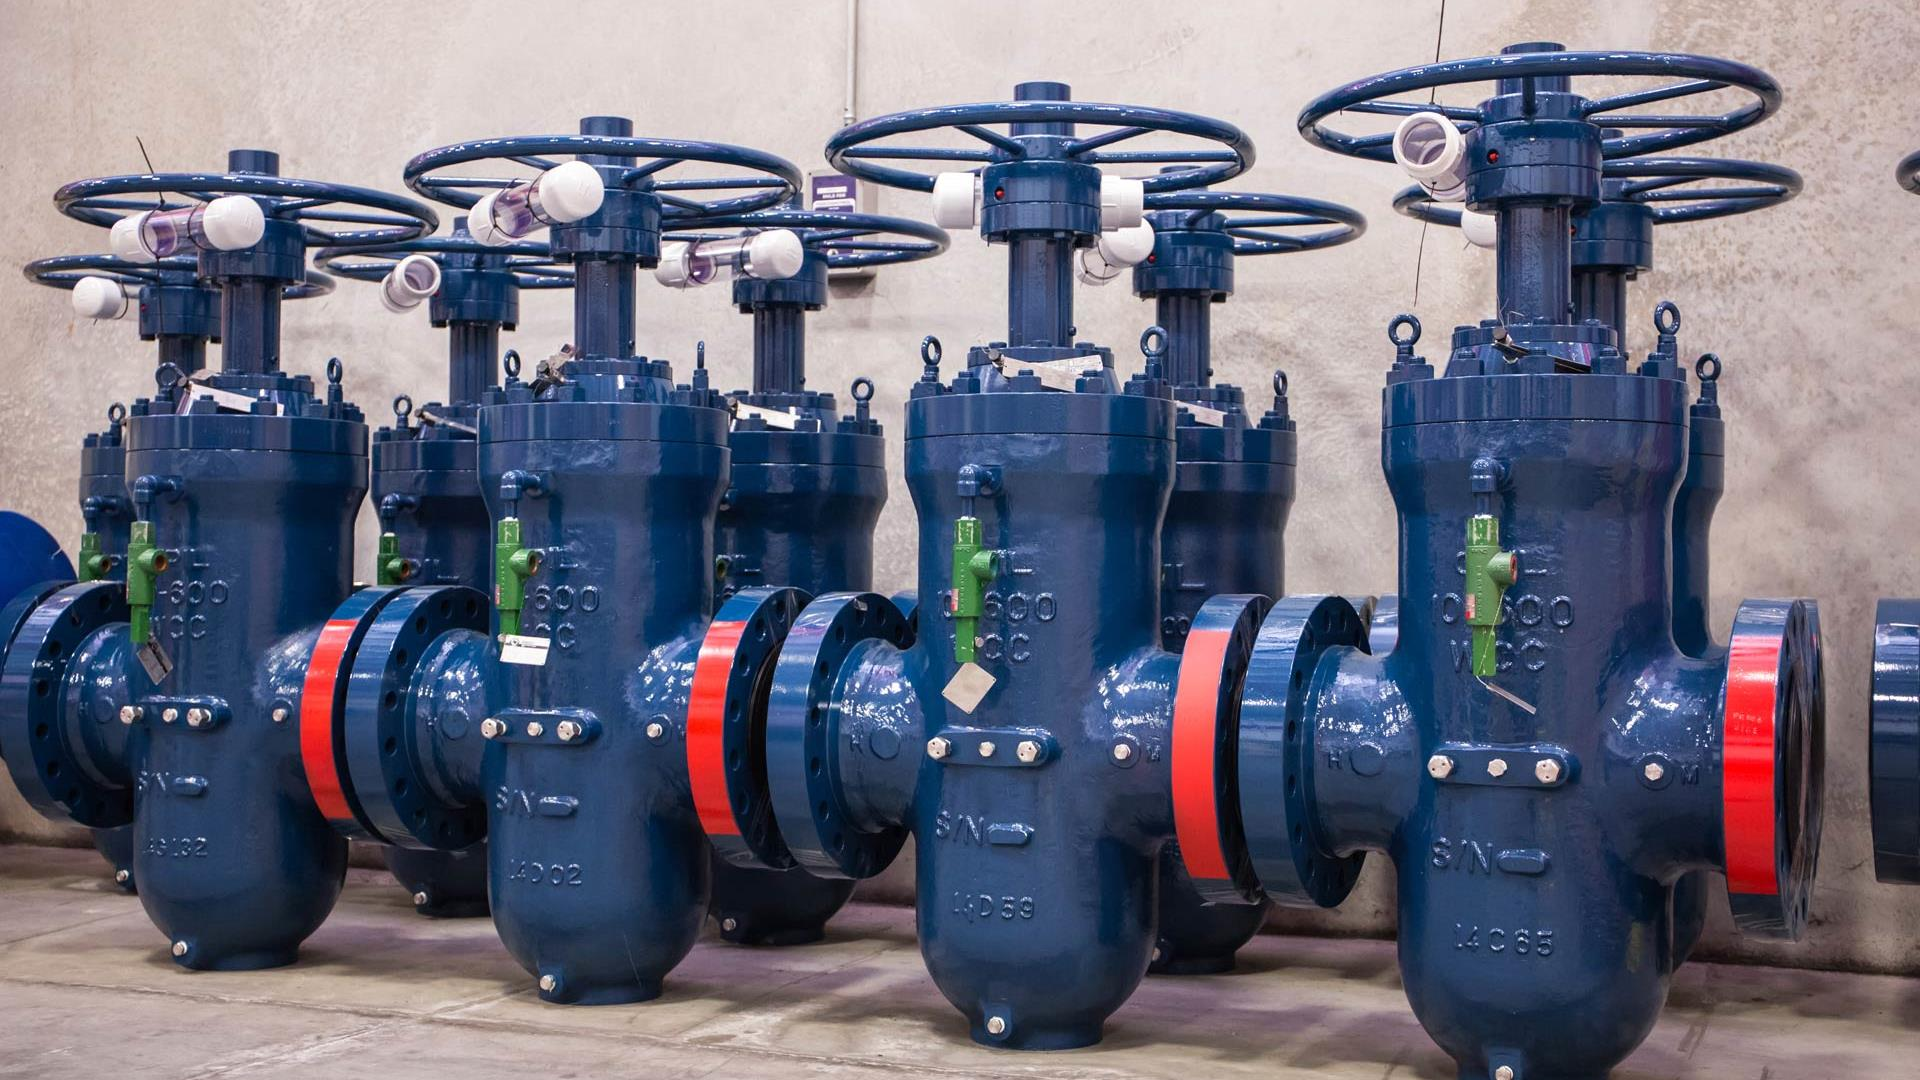 Image of midstream aftermarket valves